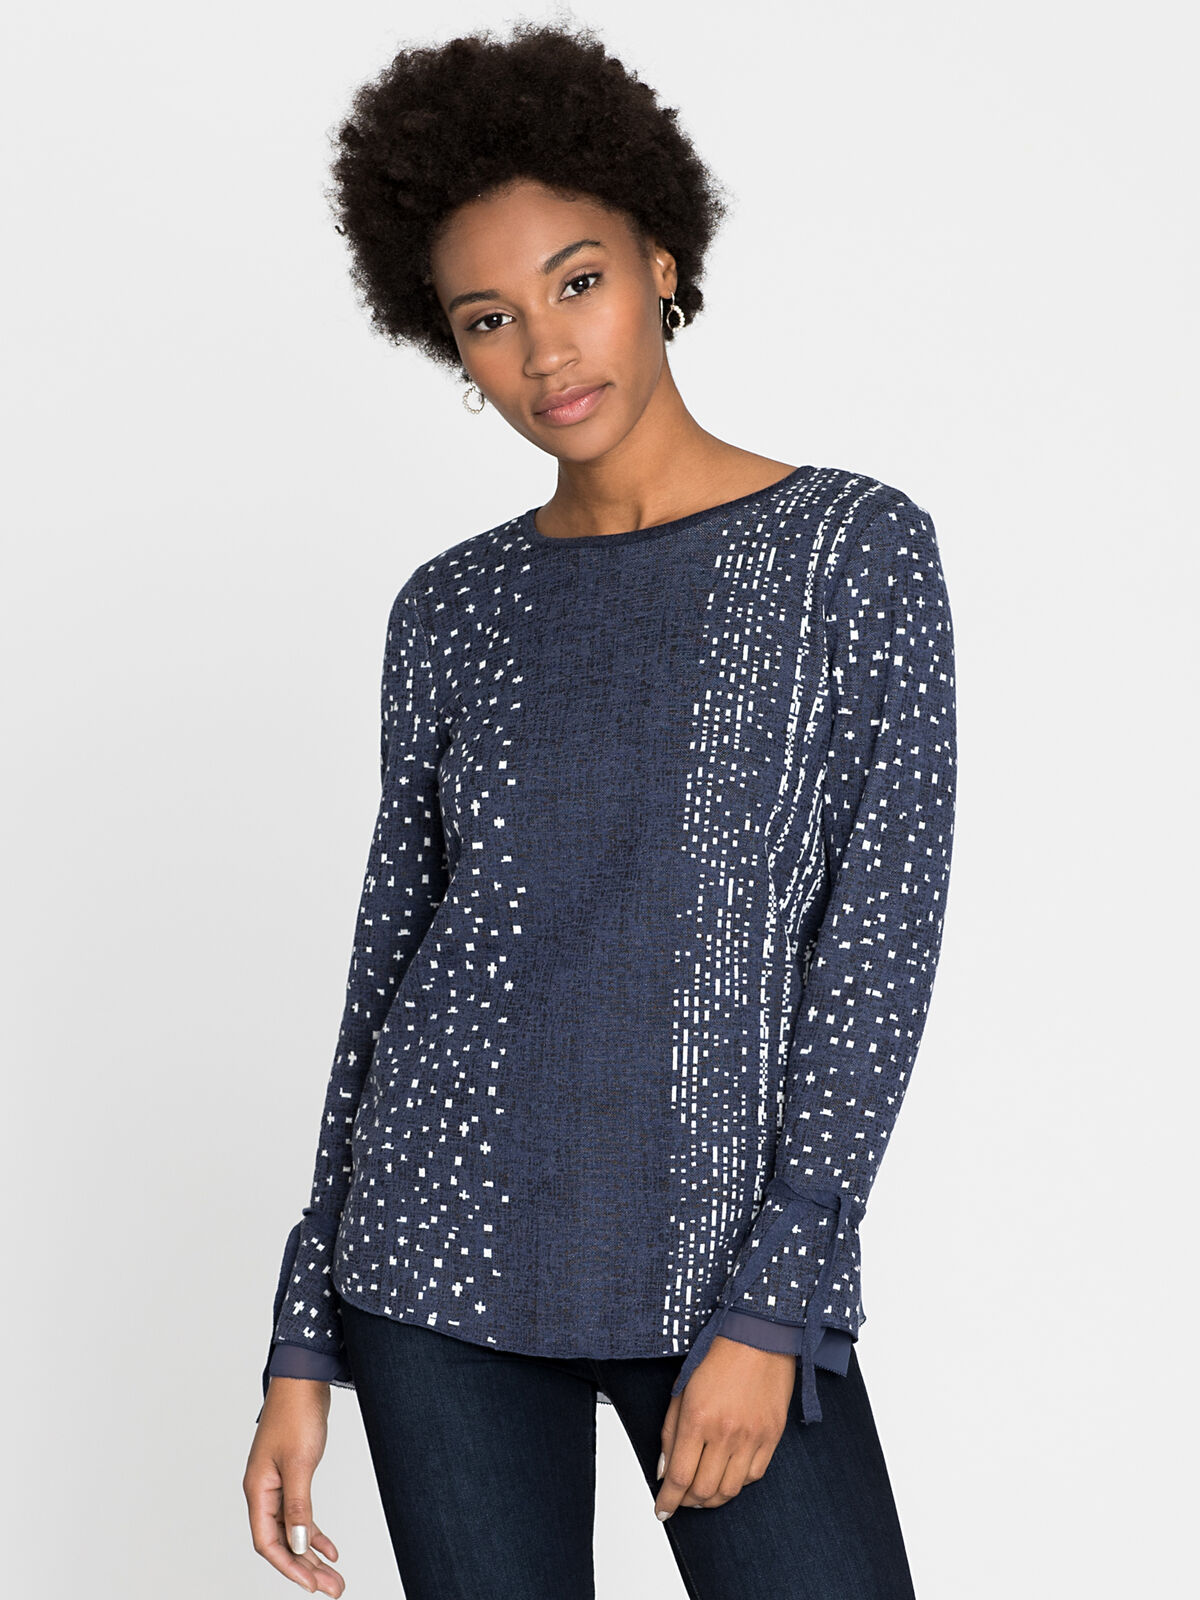 Dotted Line Cuffed Top